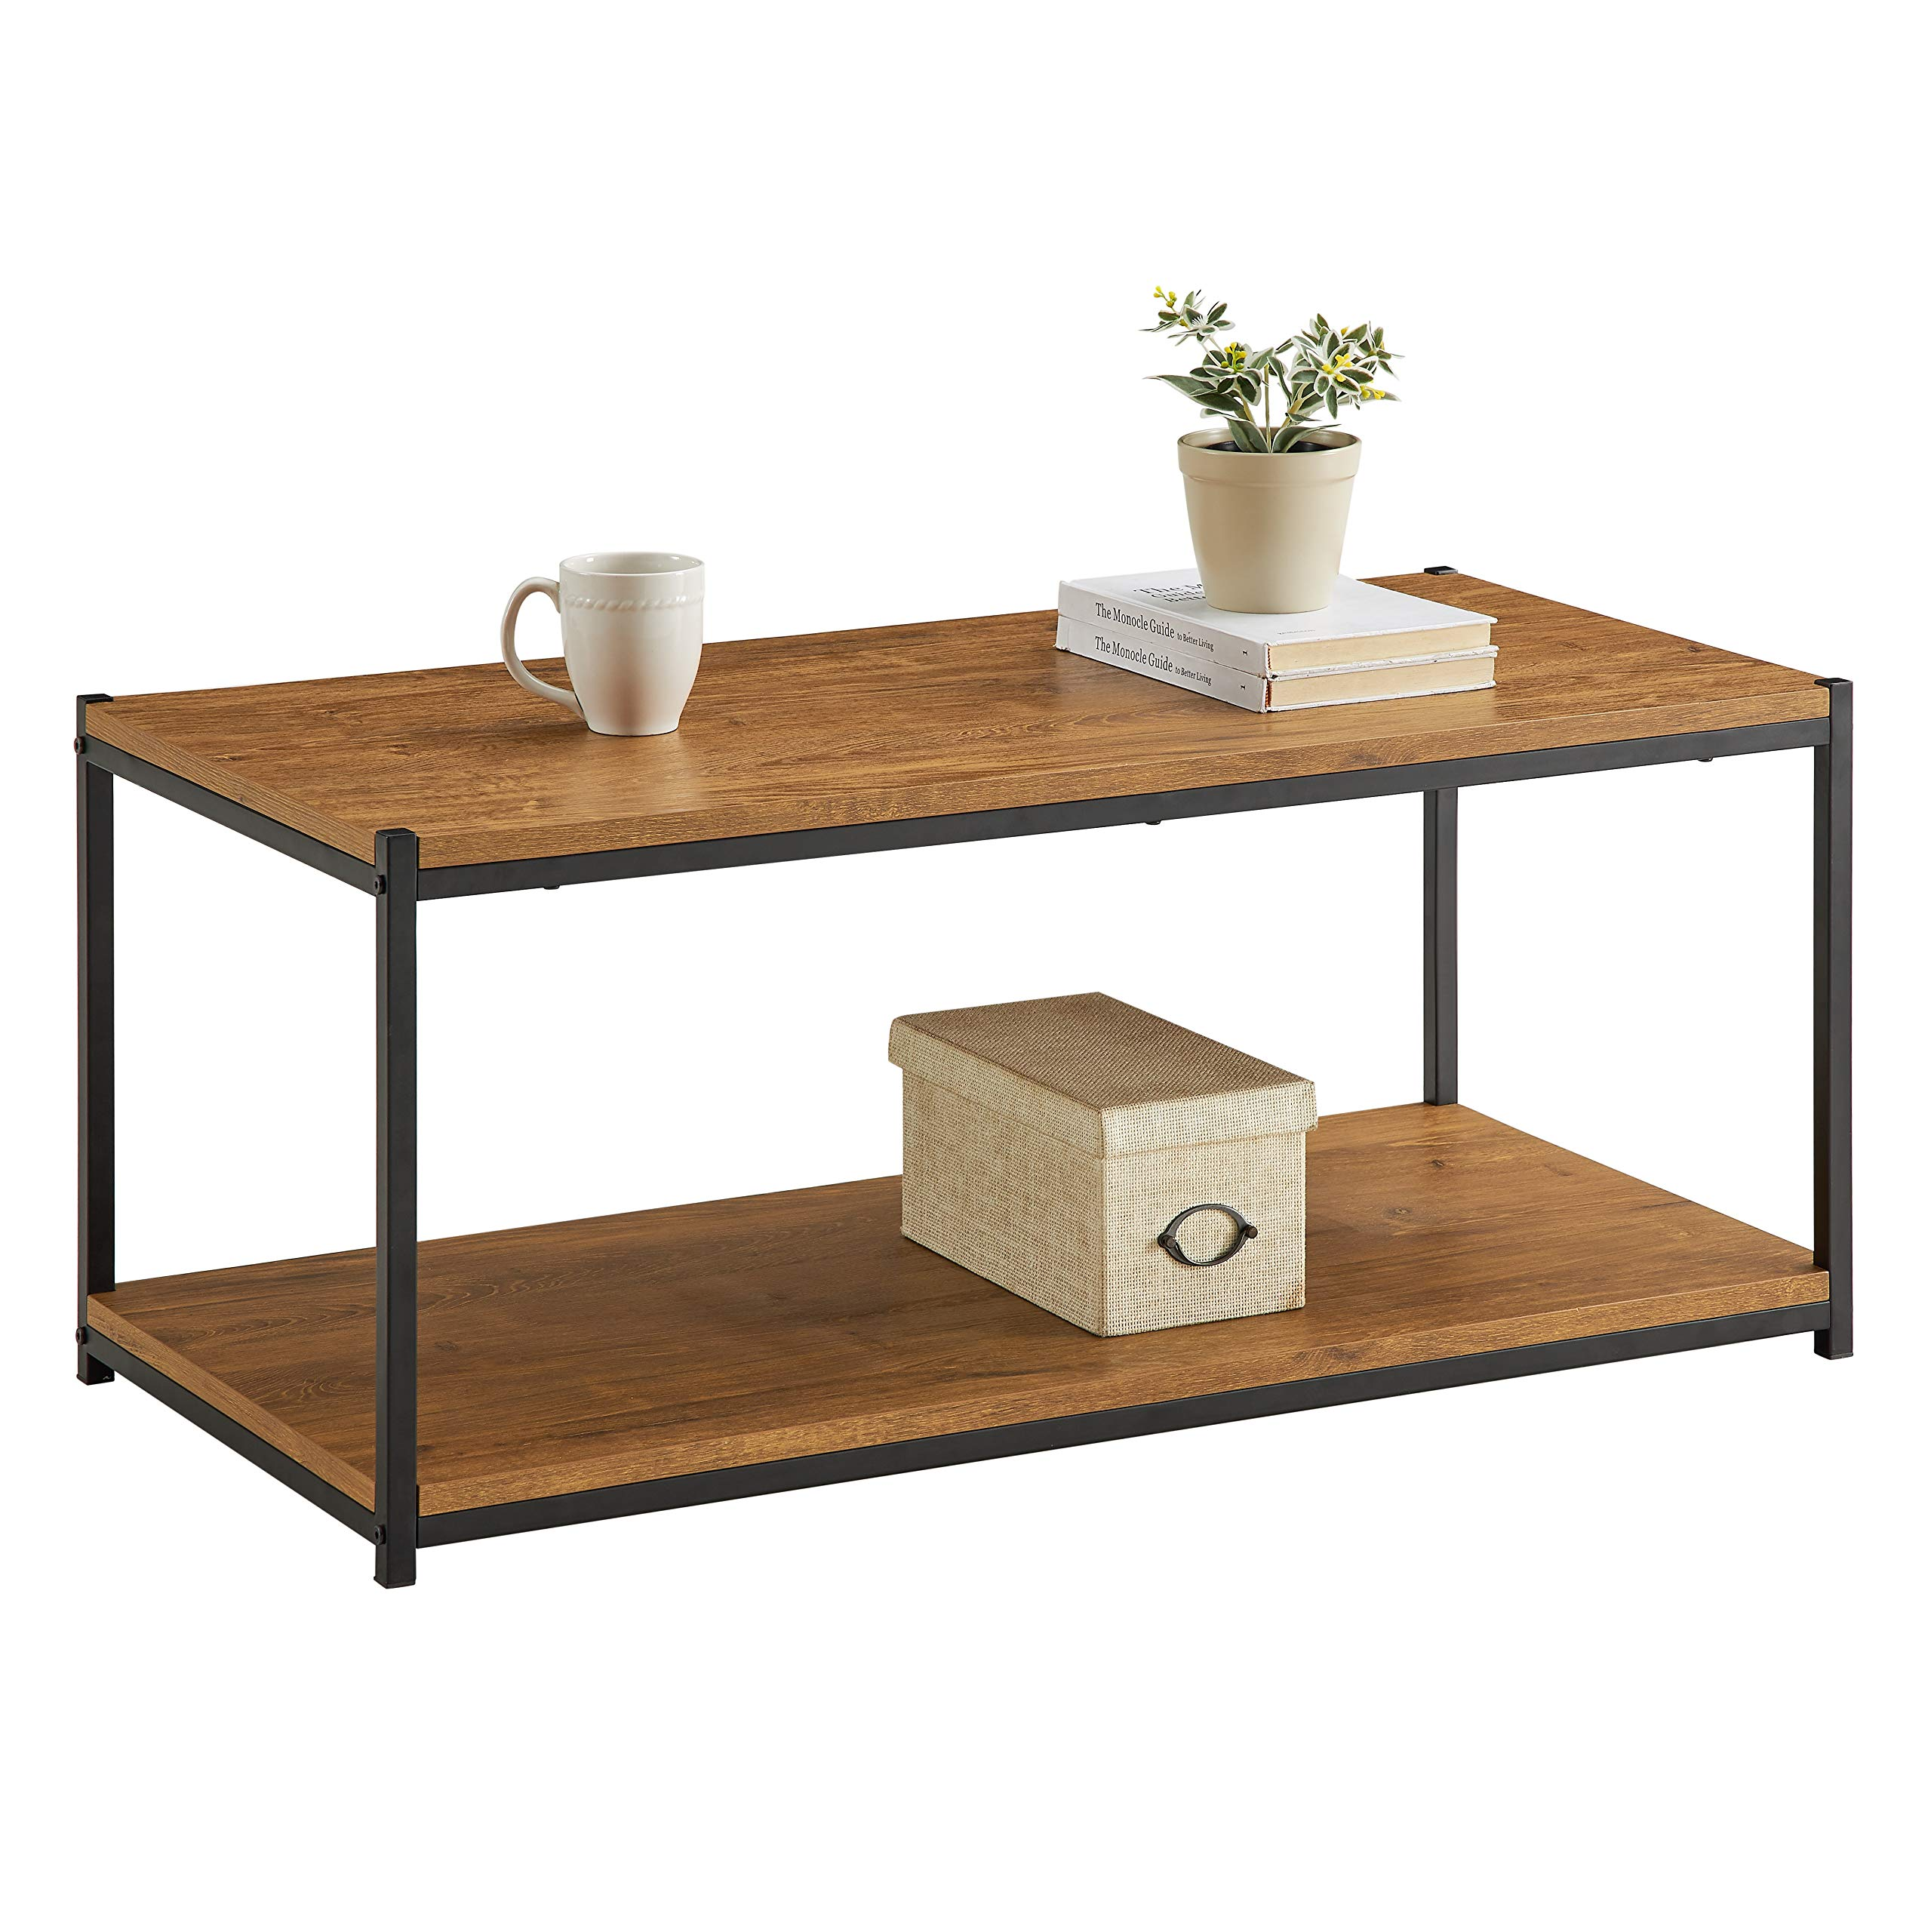 Tall Center Table Coffee Table by CAFFOZ Furniture Designs | Storage Shelf | Sturdy | Easy Assembly | Brown Oak Wood Look Accent Furniture with Metal Frame by CAFFOZ Funiture Designs